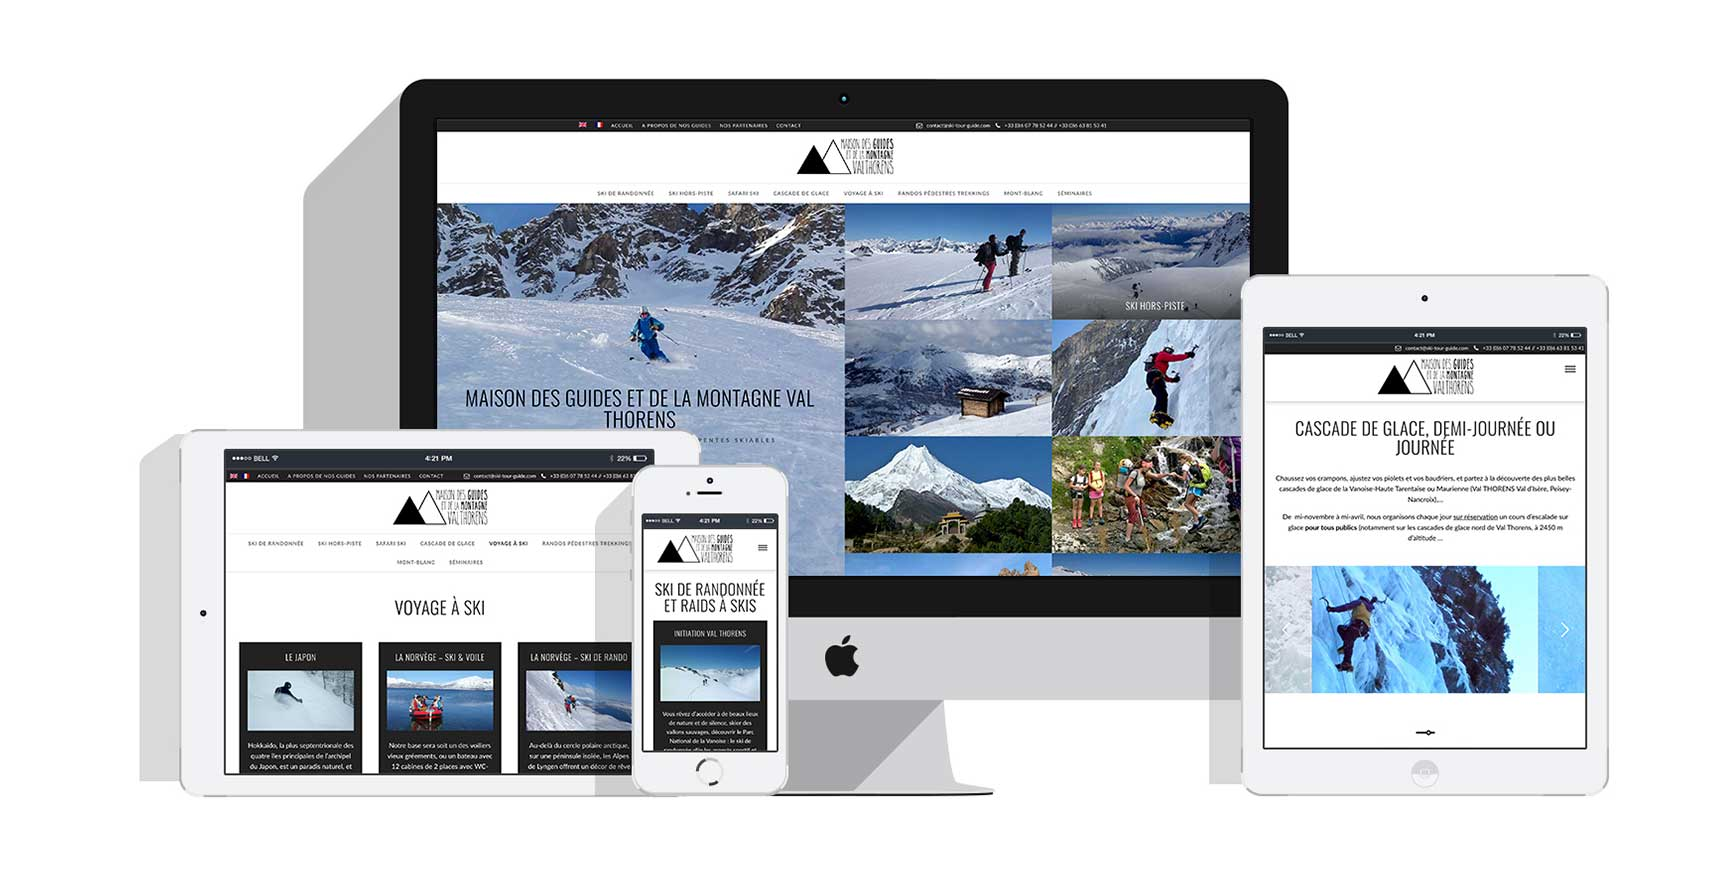 portfolio-ski-tour-guide-florence-borrel-flobo-design-graphique-infographie-webdesign-savoie-tarentaise-meribel-menuires-courchevel